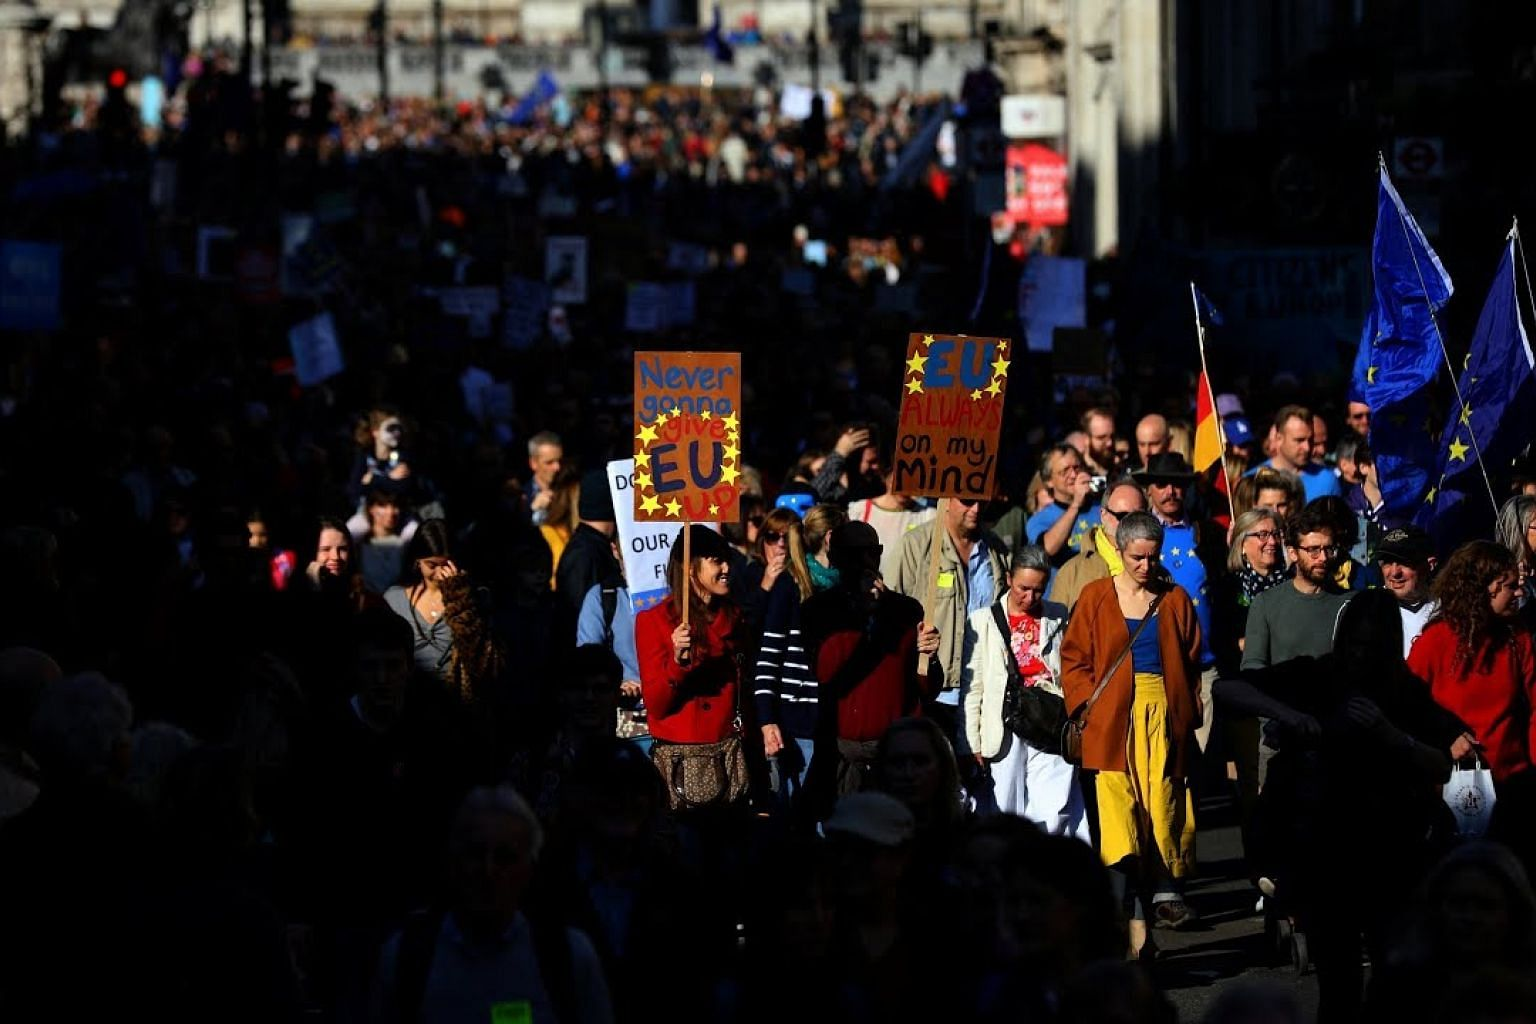 Thousands take to streets in London demanding second Brexit vote